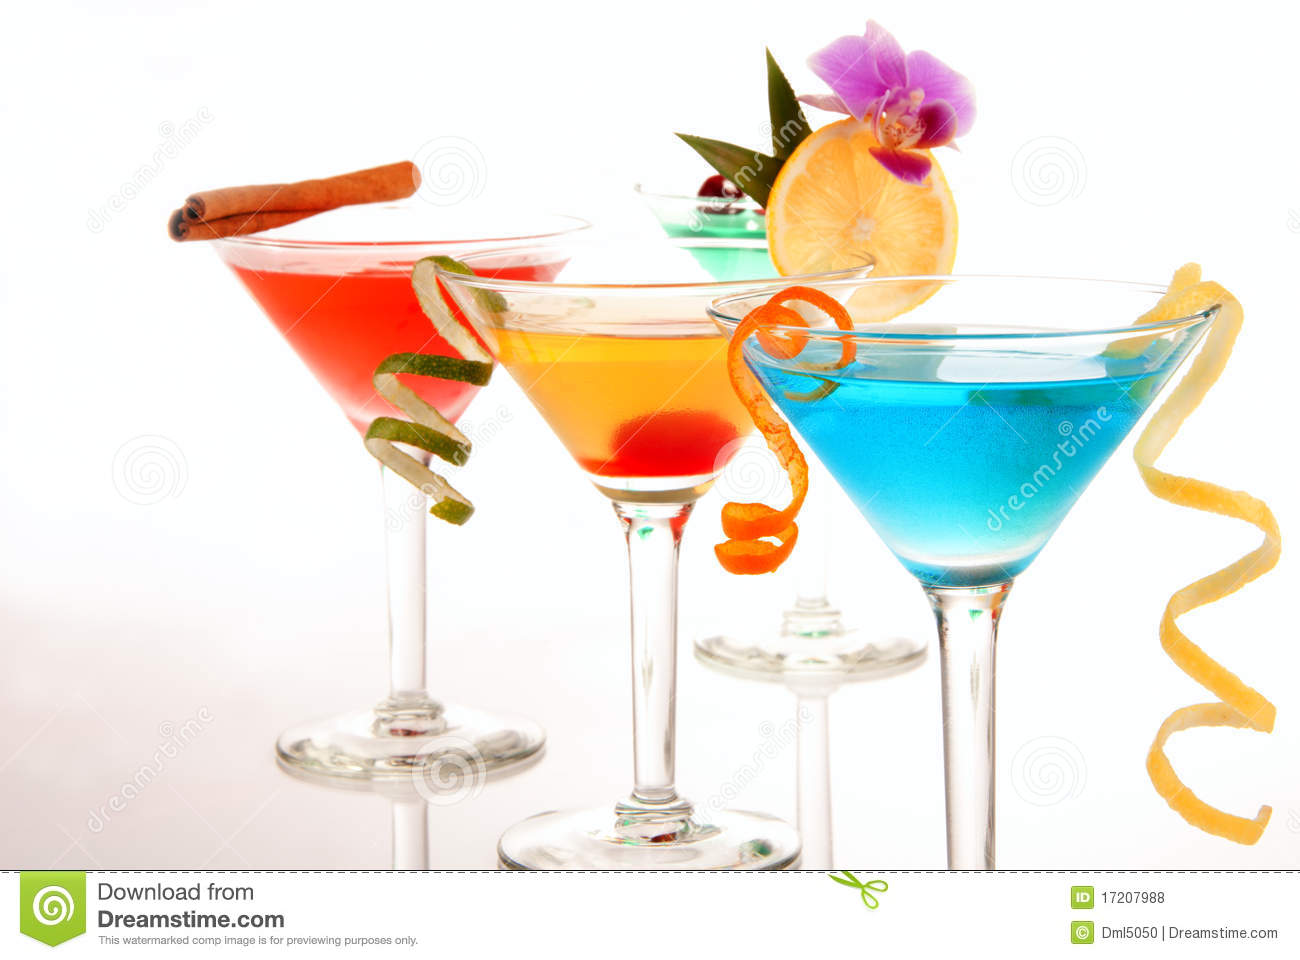 Tropical martini cocktails royalty free stock photos for Light cocktails with vodka